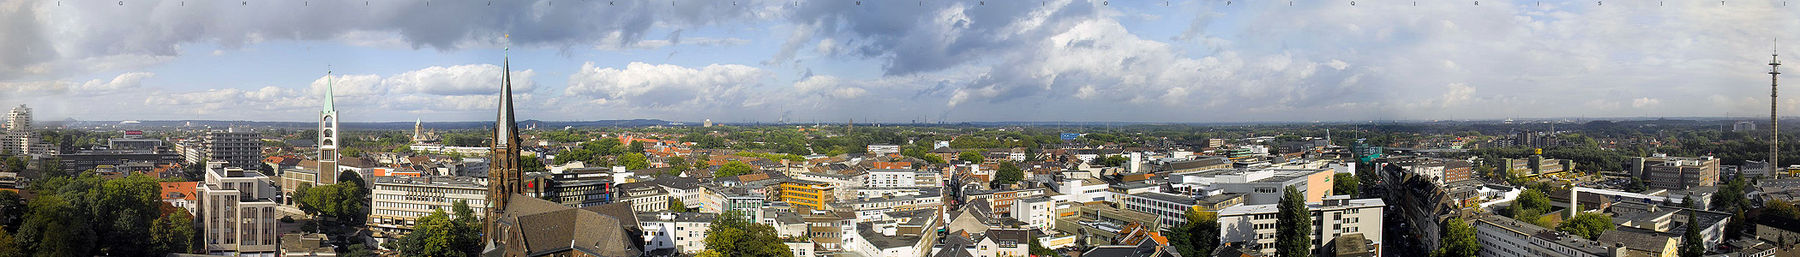 Gelsenkirchen Altstadt banner Panorama over city.jpg